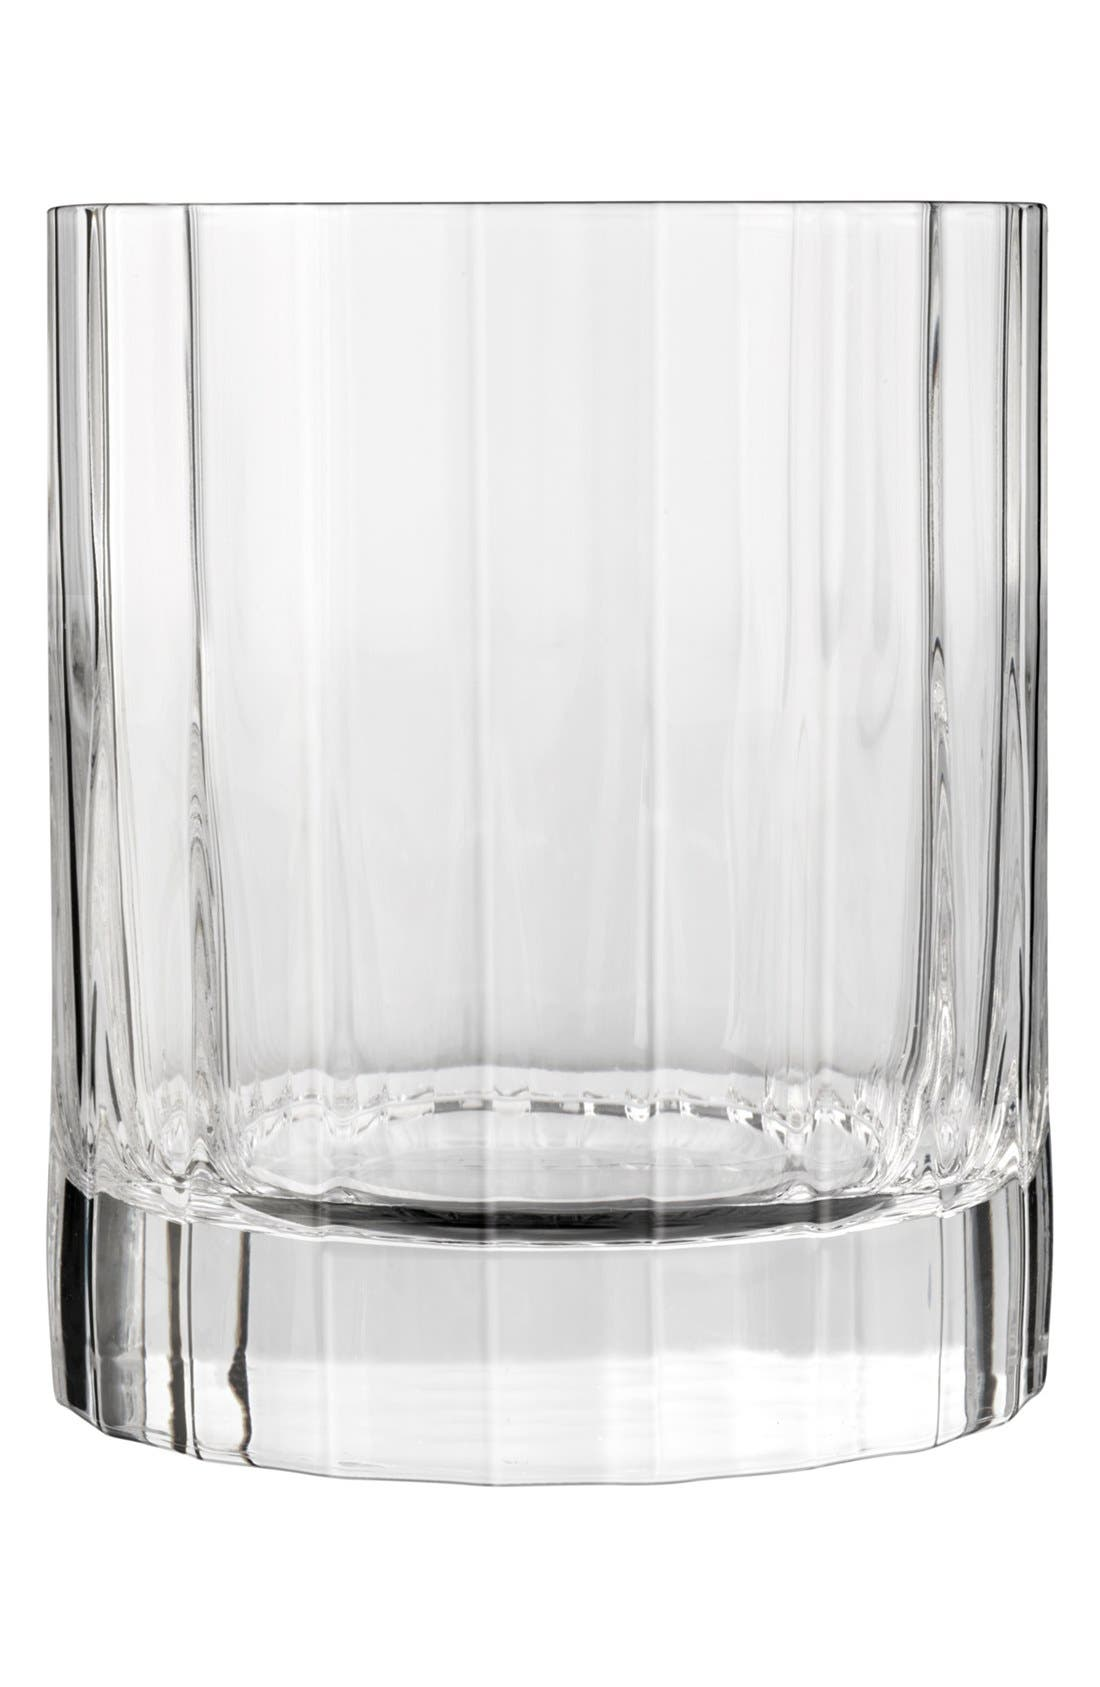 'Bach' Double Old Fashioned Glasses,                             Main thumbnail 1, color,                             CLEAR